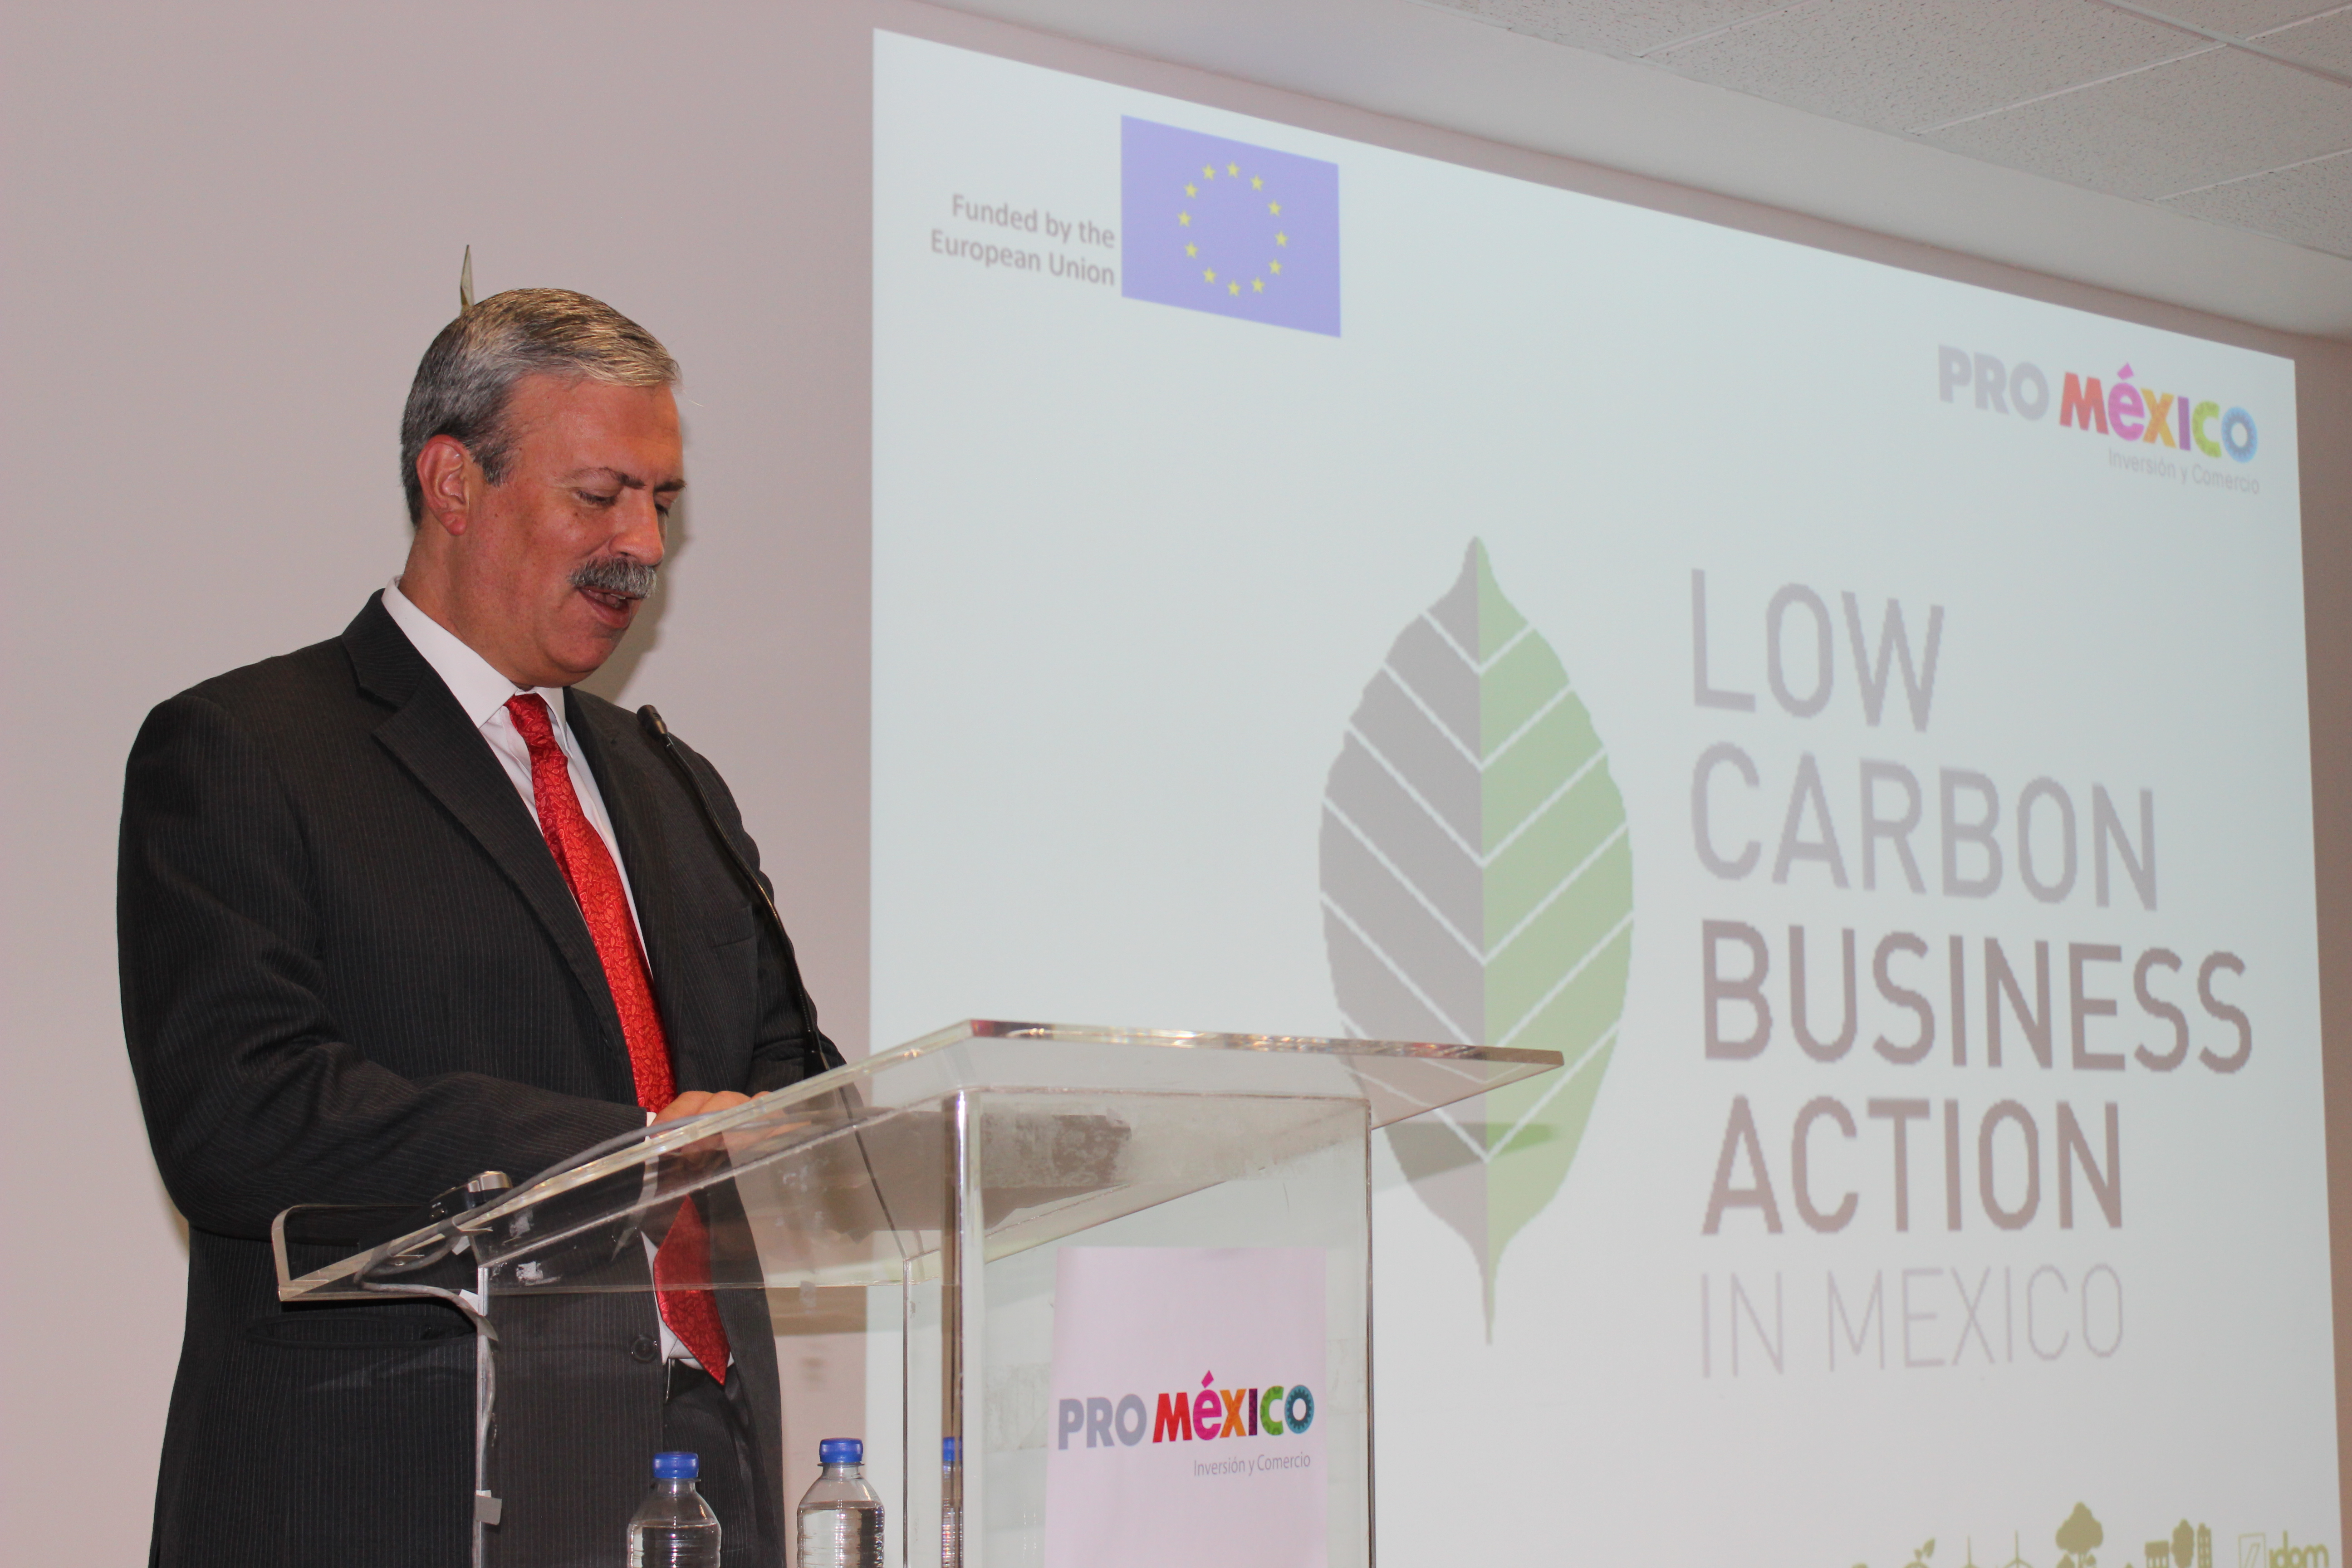 "The European Union and ProMéxico announce the ""Low Carbon Business Action in Mexico"" project"